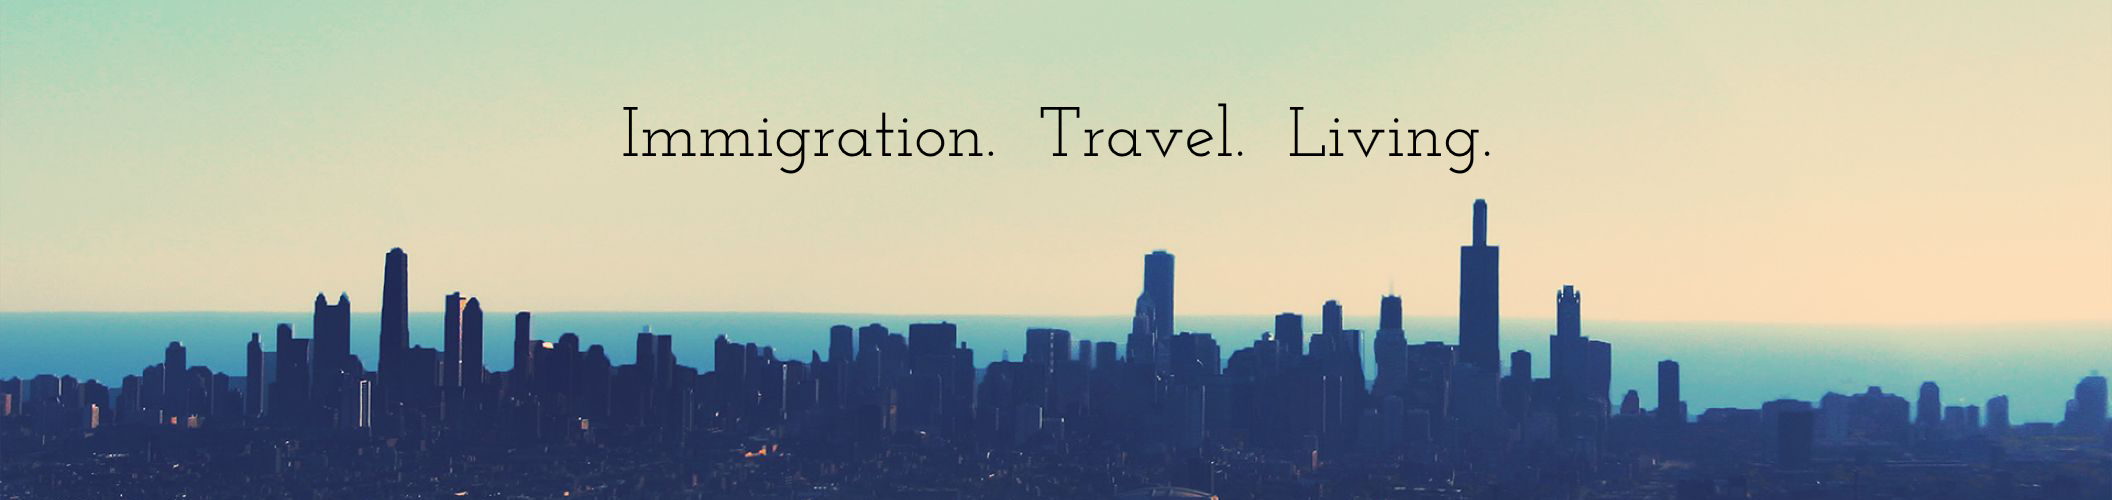 City skyline with text: immigration, tourism, living